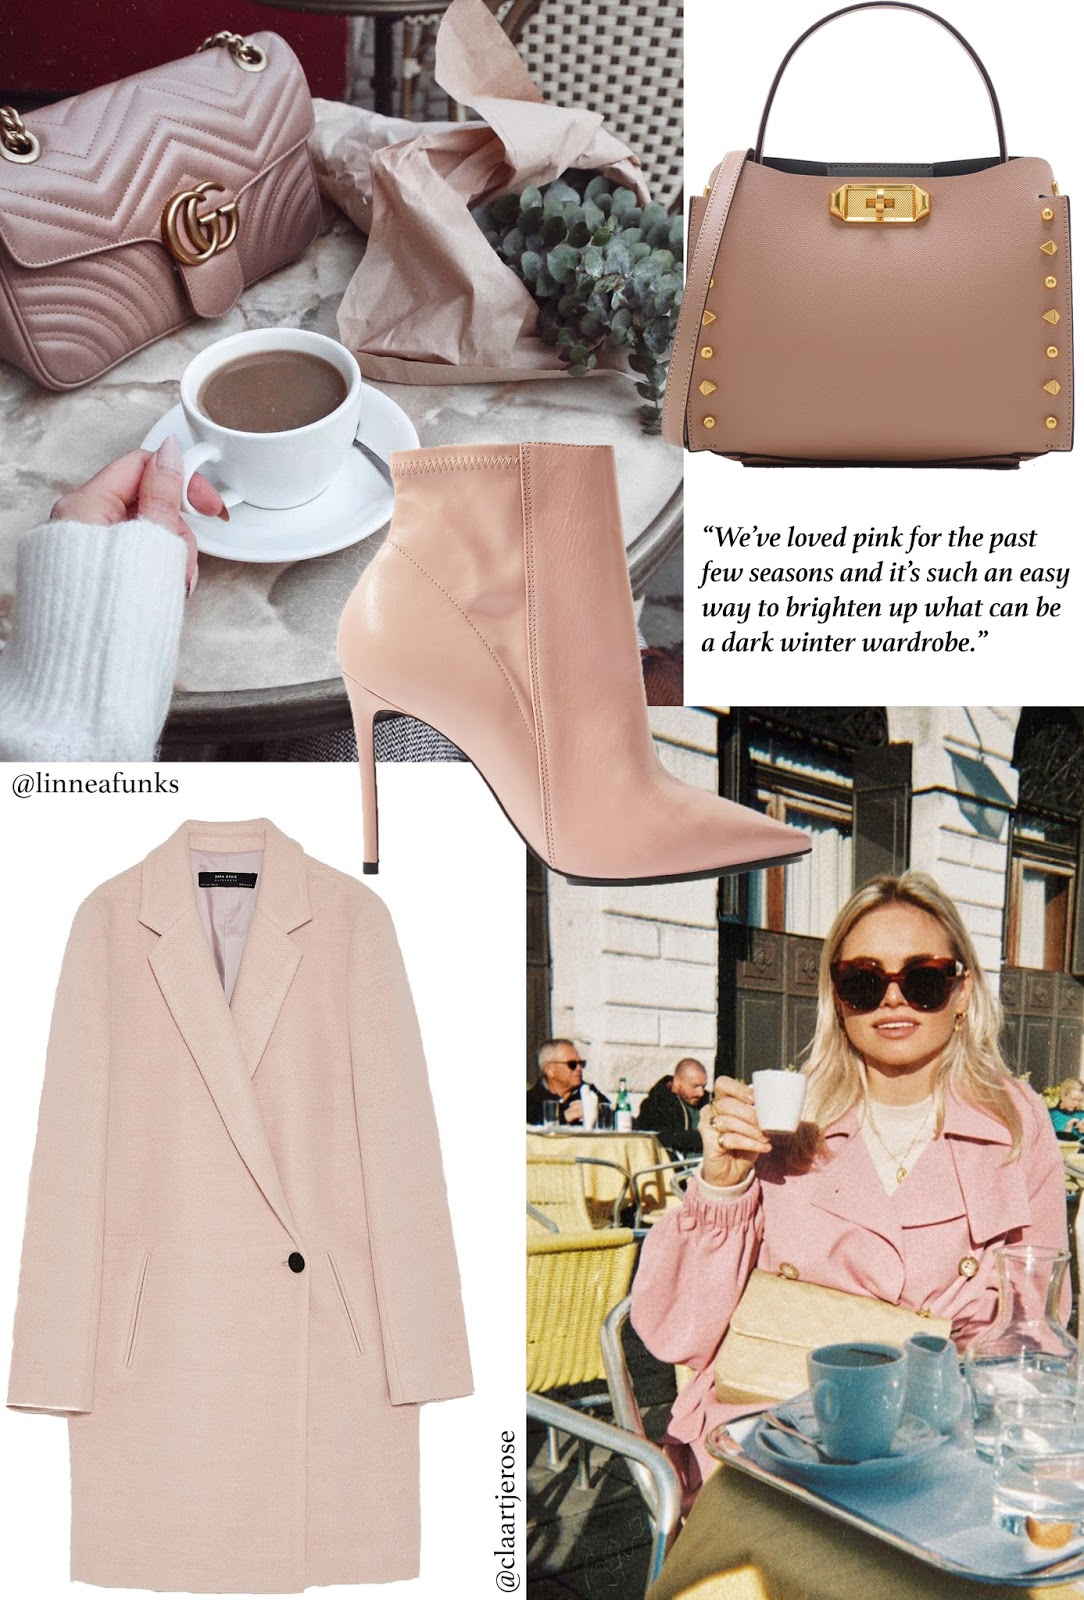 Fashion, Style Set, Fashion Bloggers, AW17, Outfit Ideas, Pink, Jewellery, Knitwear, Lingerie, Trench Coat